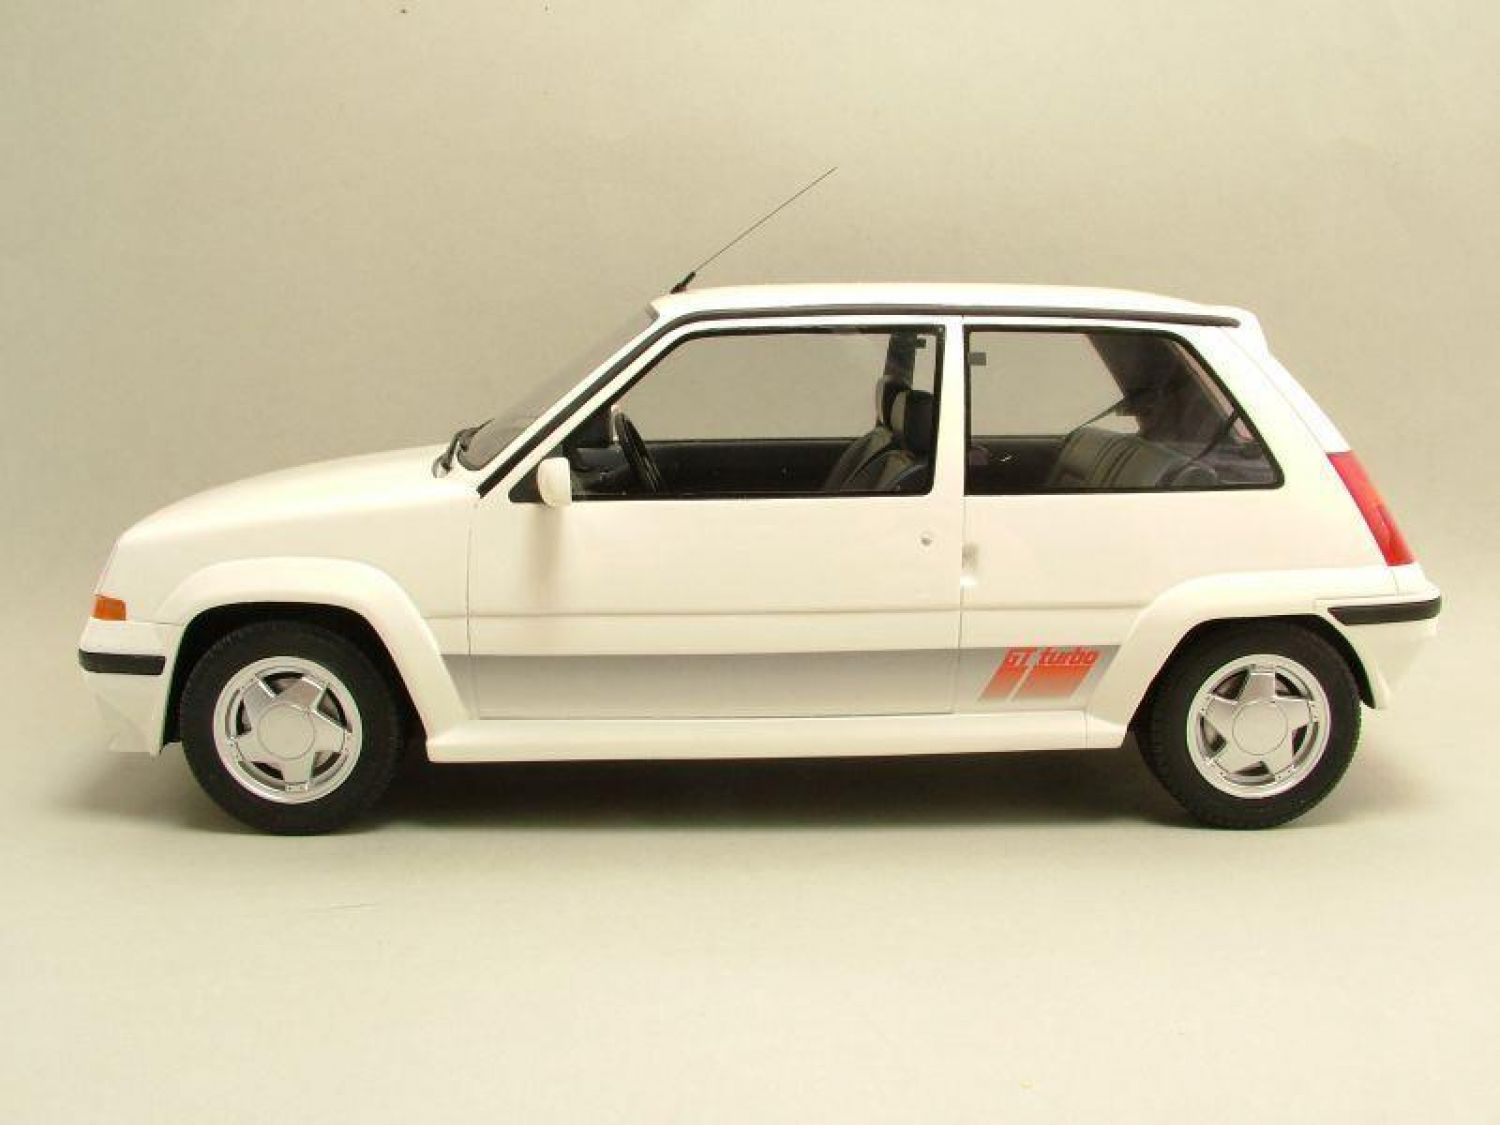 renault super 5 gt turbo 1987 blanc m tallique mod le de voiture 1 12 ottomobile ebay. Black Bedroom Furniture Sets. Home Design Ideas